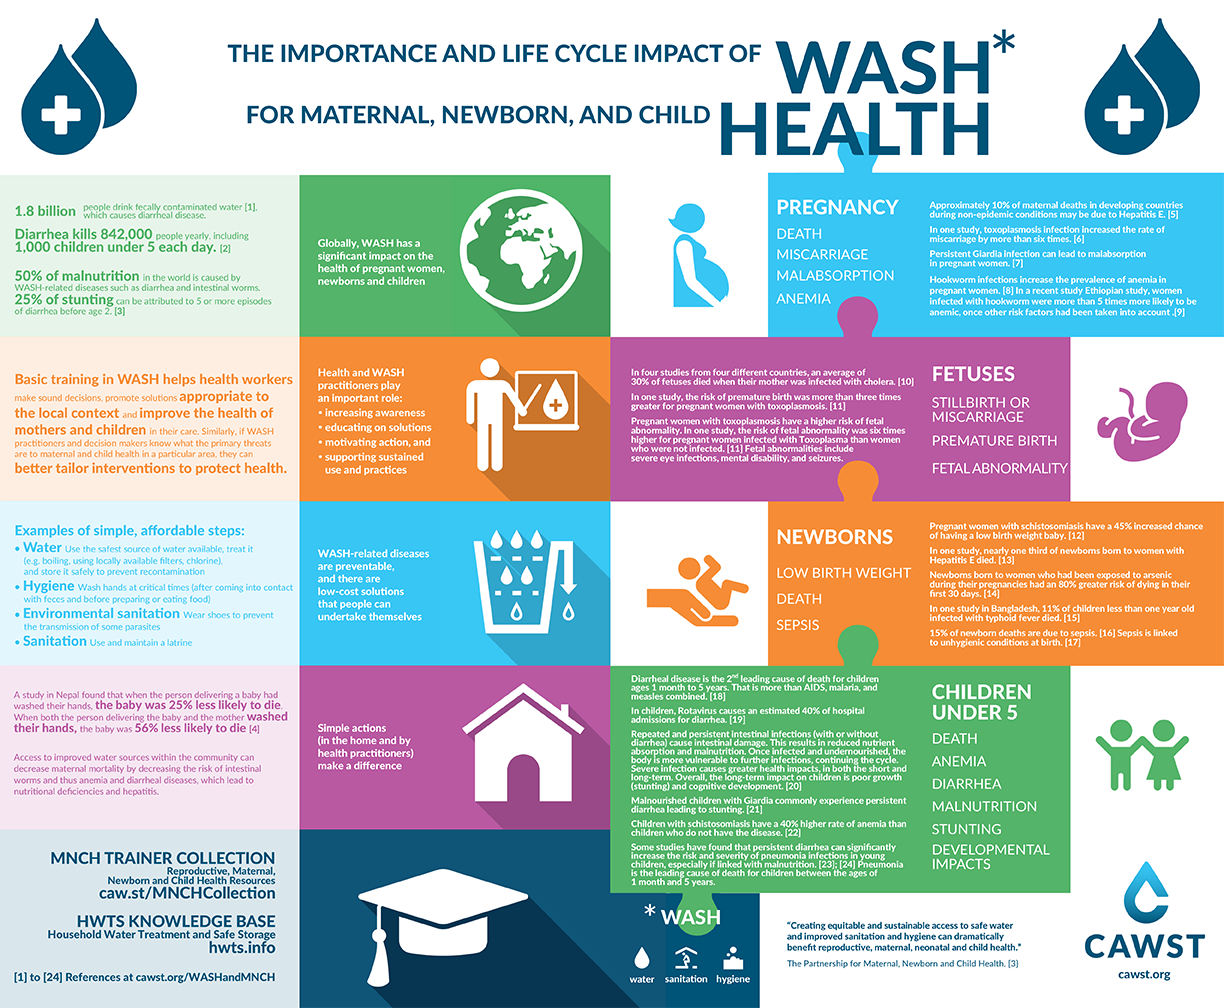 Impact of WASH in Maternal, Newborn and Child Health